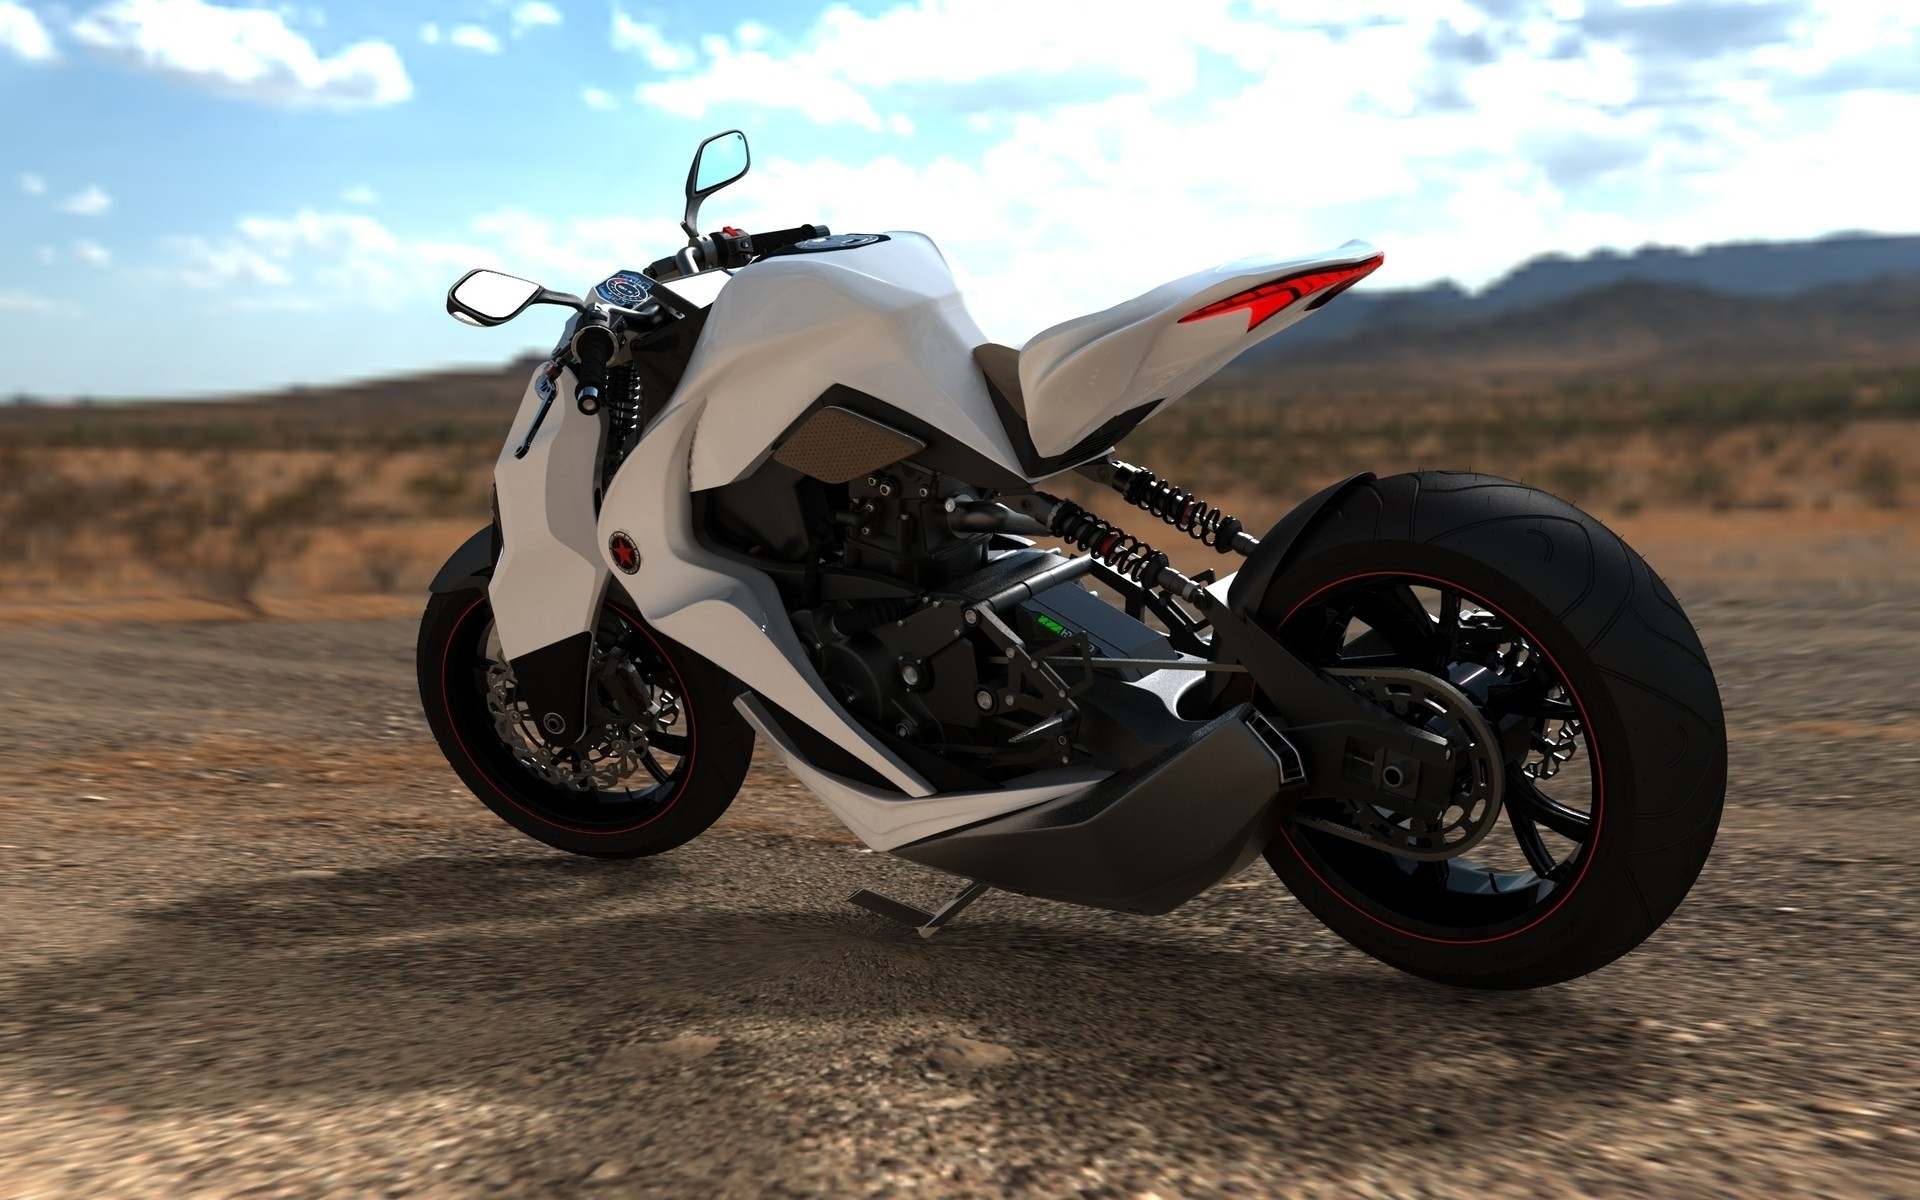 Motorcycles Wallpapers For Android. Wallpapers On Desktop